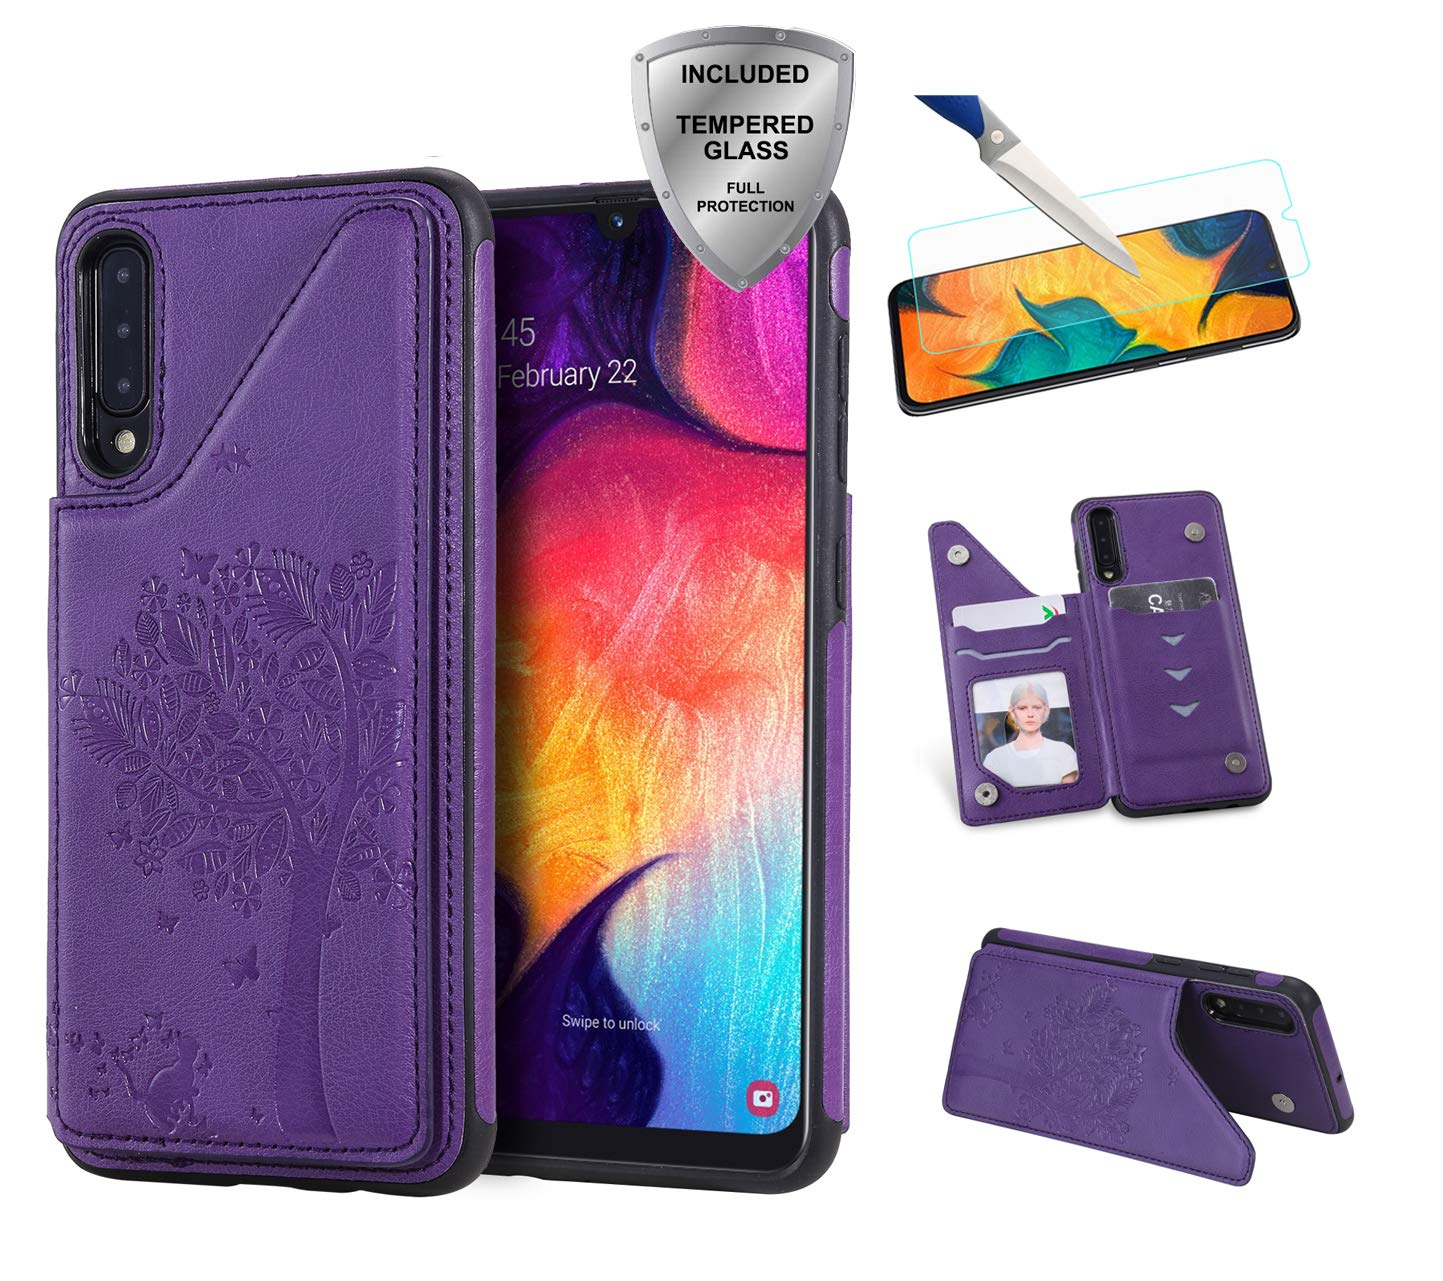 Tznzxm Galaxy A50 Case with [Tempered Glass Screen Protector] PU Leather Kickstand Card Slots Double Magnetic Clasp Durable Shockproof Soft TPU Back Wallet Flip Cover for Samsung Galaxy A50 Purple by Tznzxm